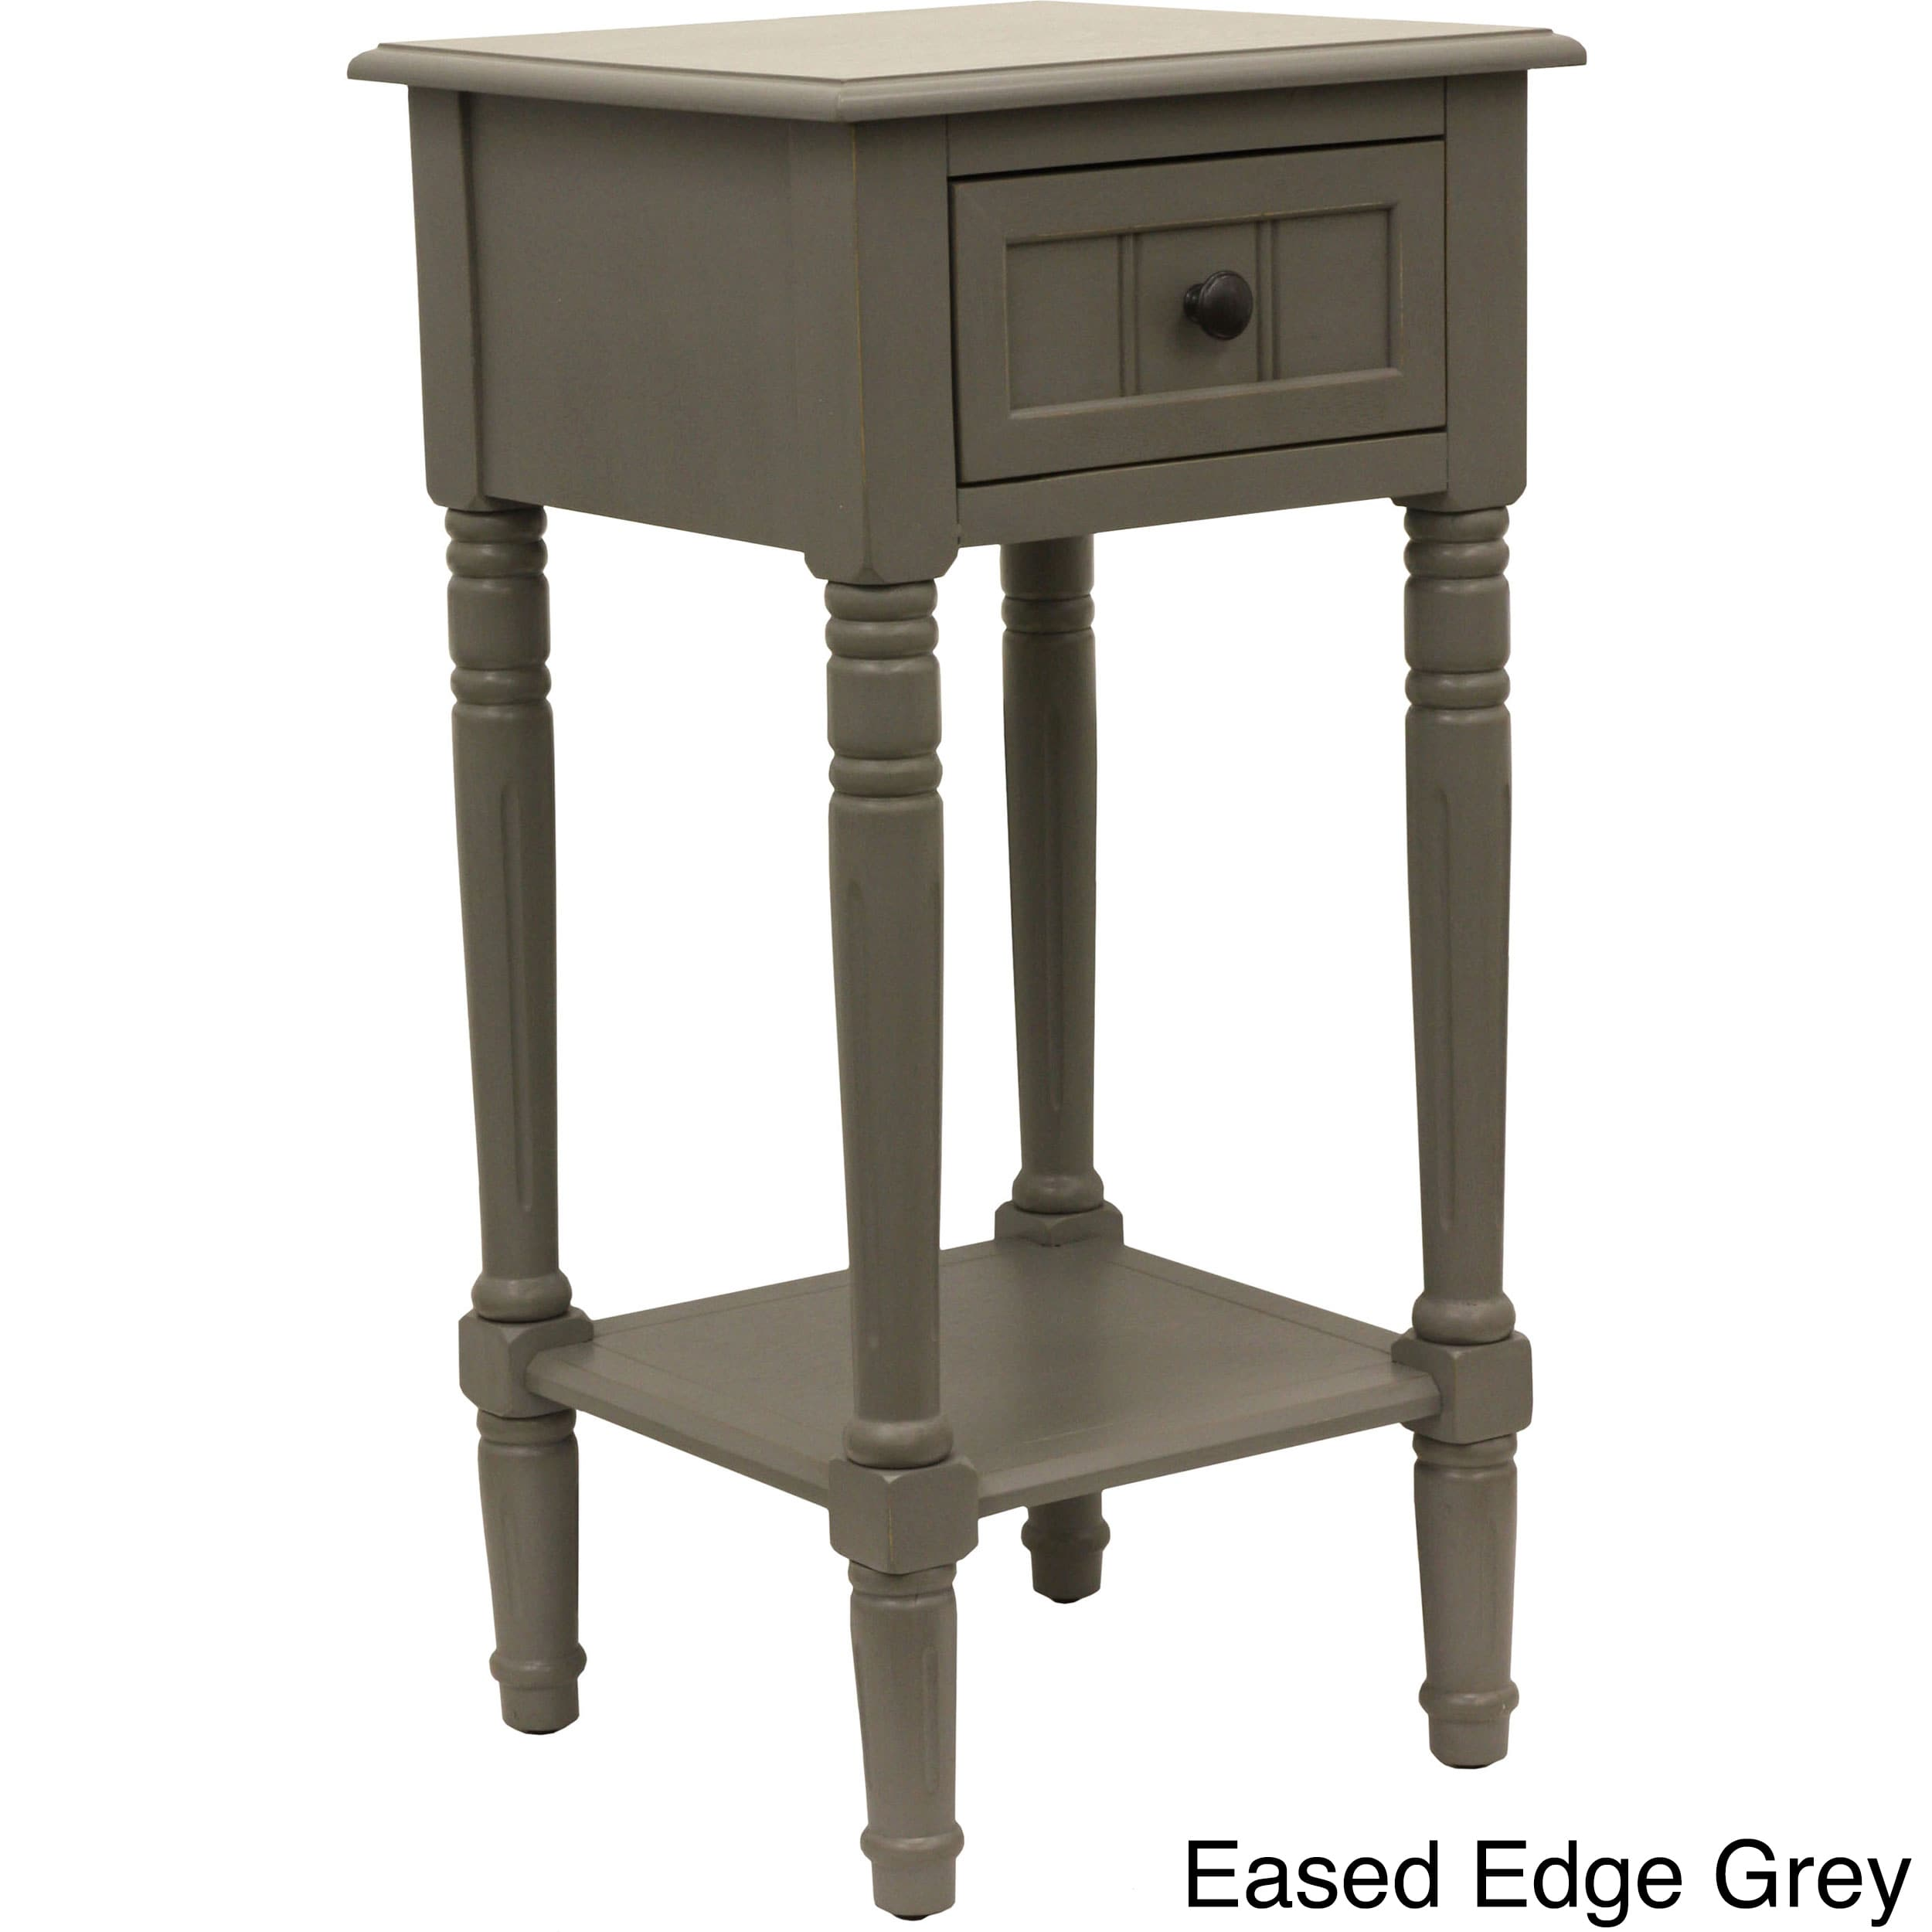 maison rouge provins one drawer square accent table antique white grey decoration pieces for drawing room small outdoor patio off end tables bedside unit black and lamp portable